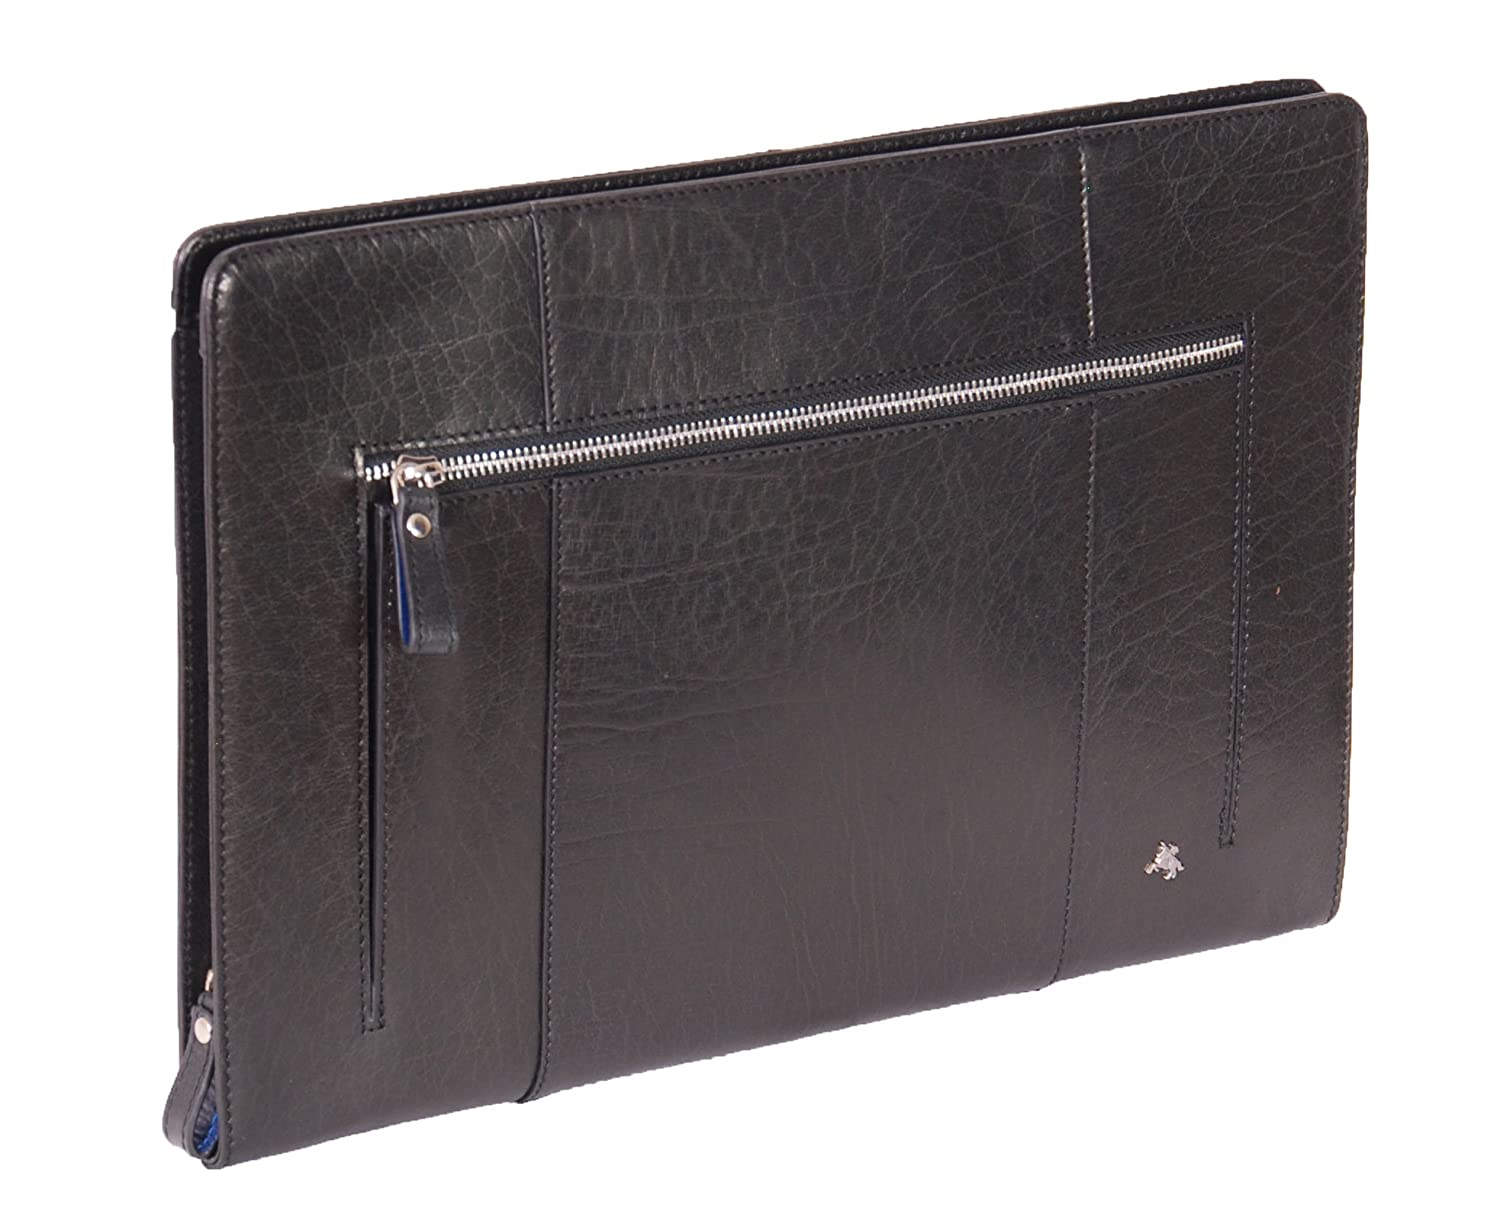 Real Leather A4 Document Folder Folio Conference Zip Folder Tablet Case CRUISE Black CRUISE-BLACK